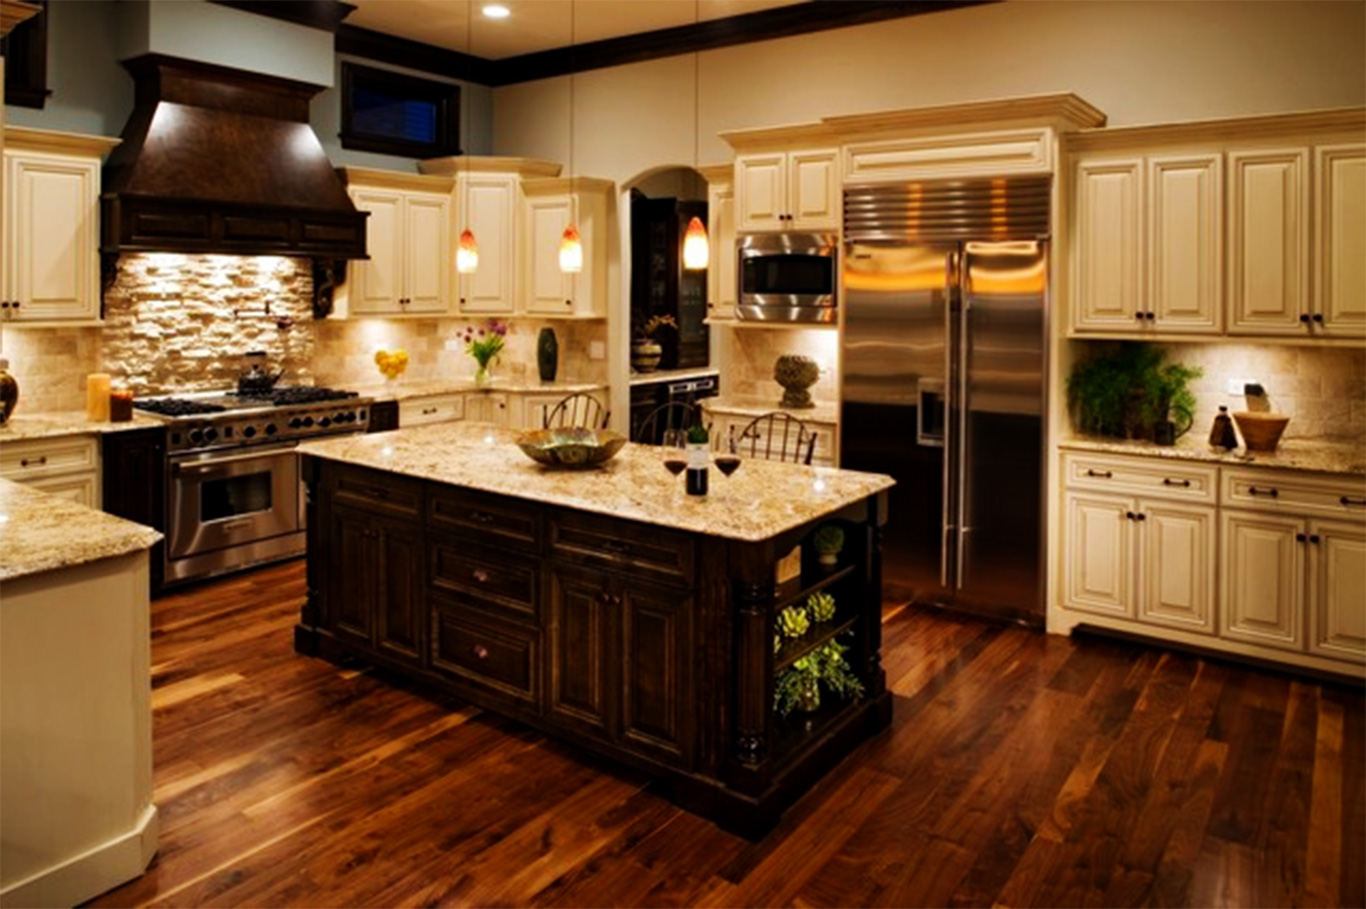 11 awesome type of kitchen design ideas for Home kitchen design ideas